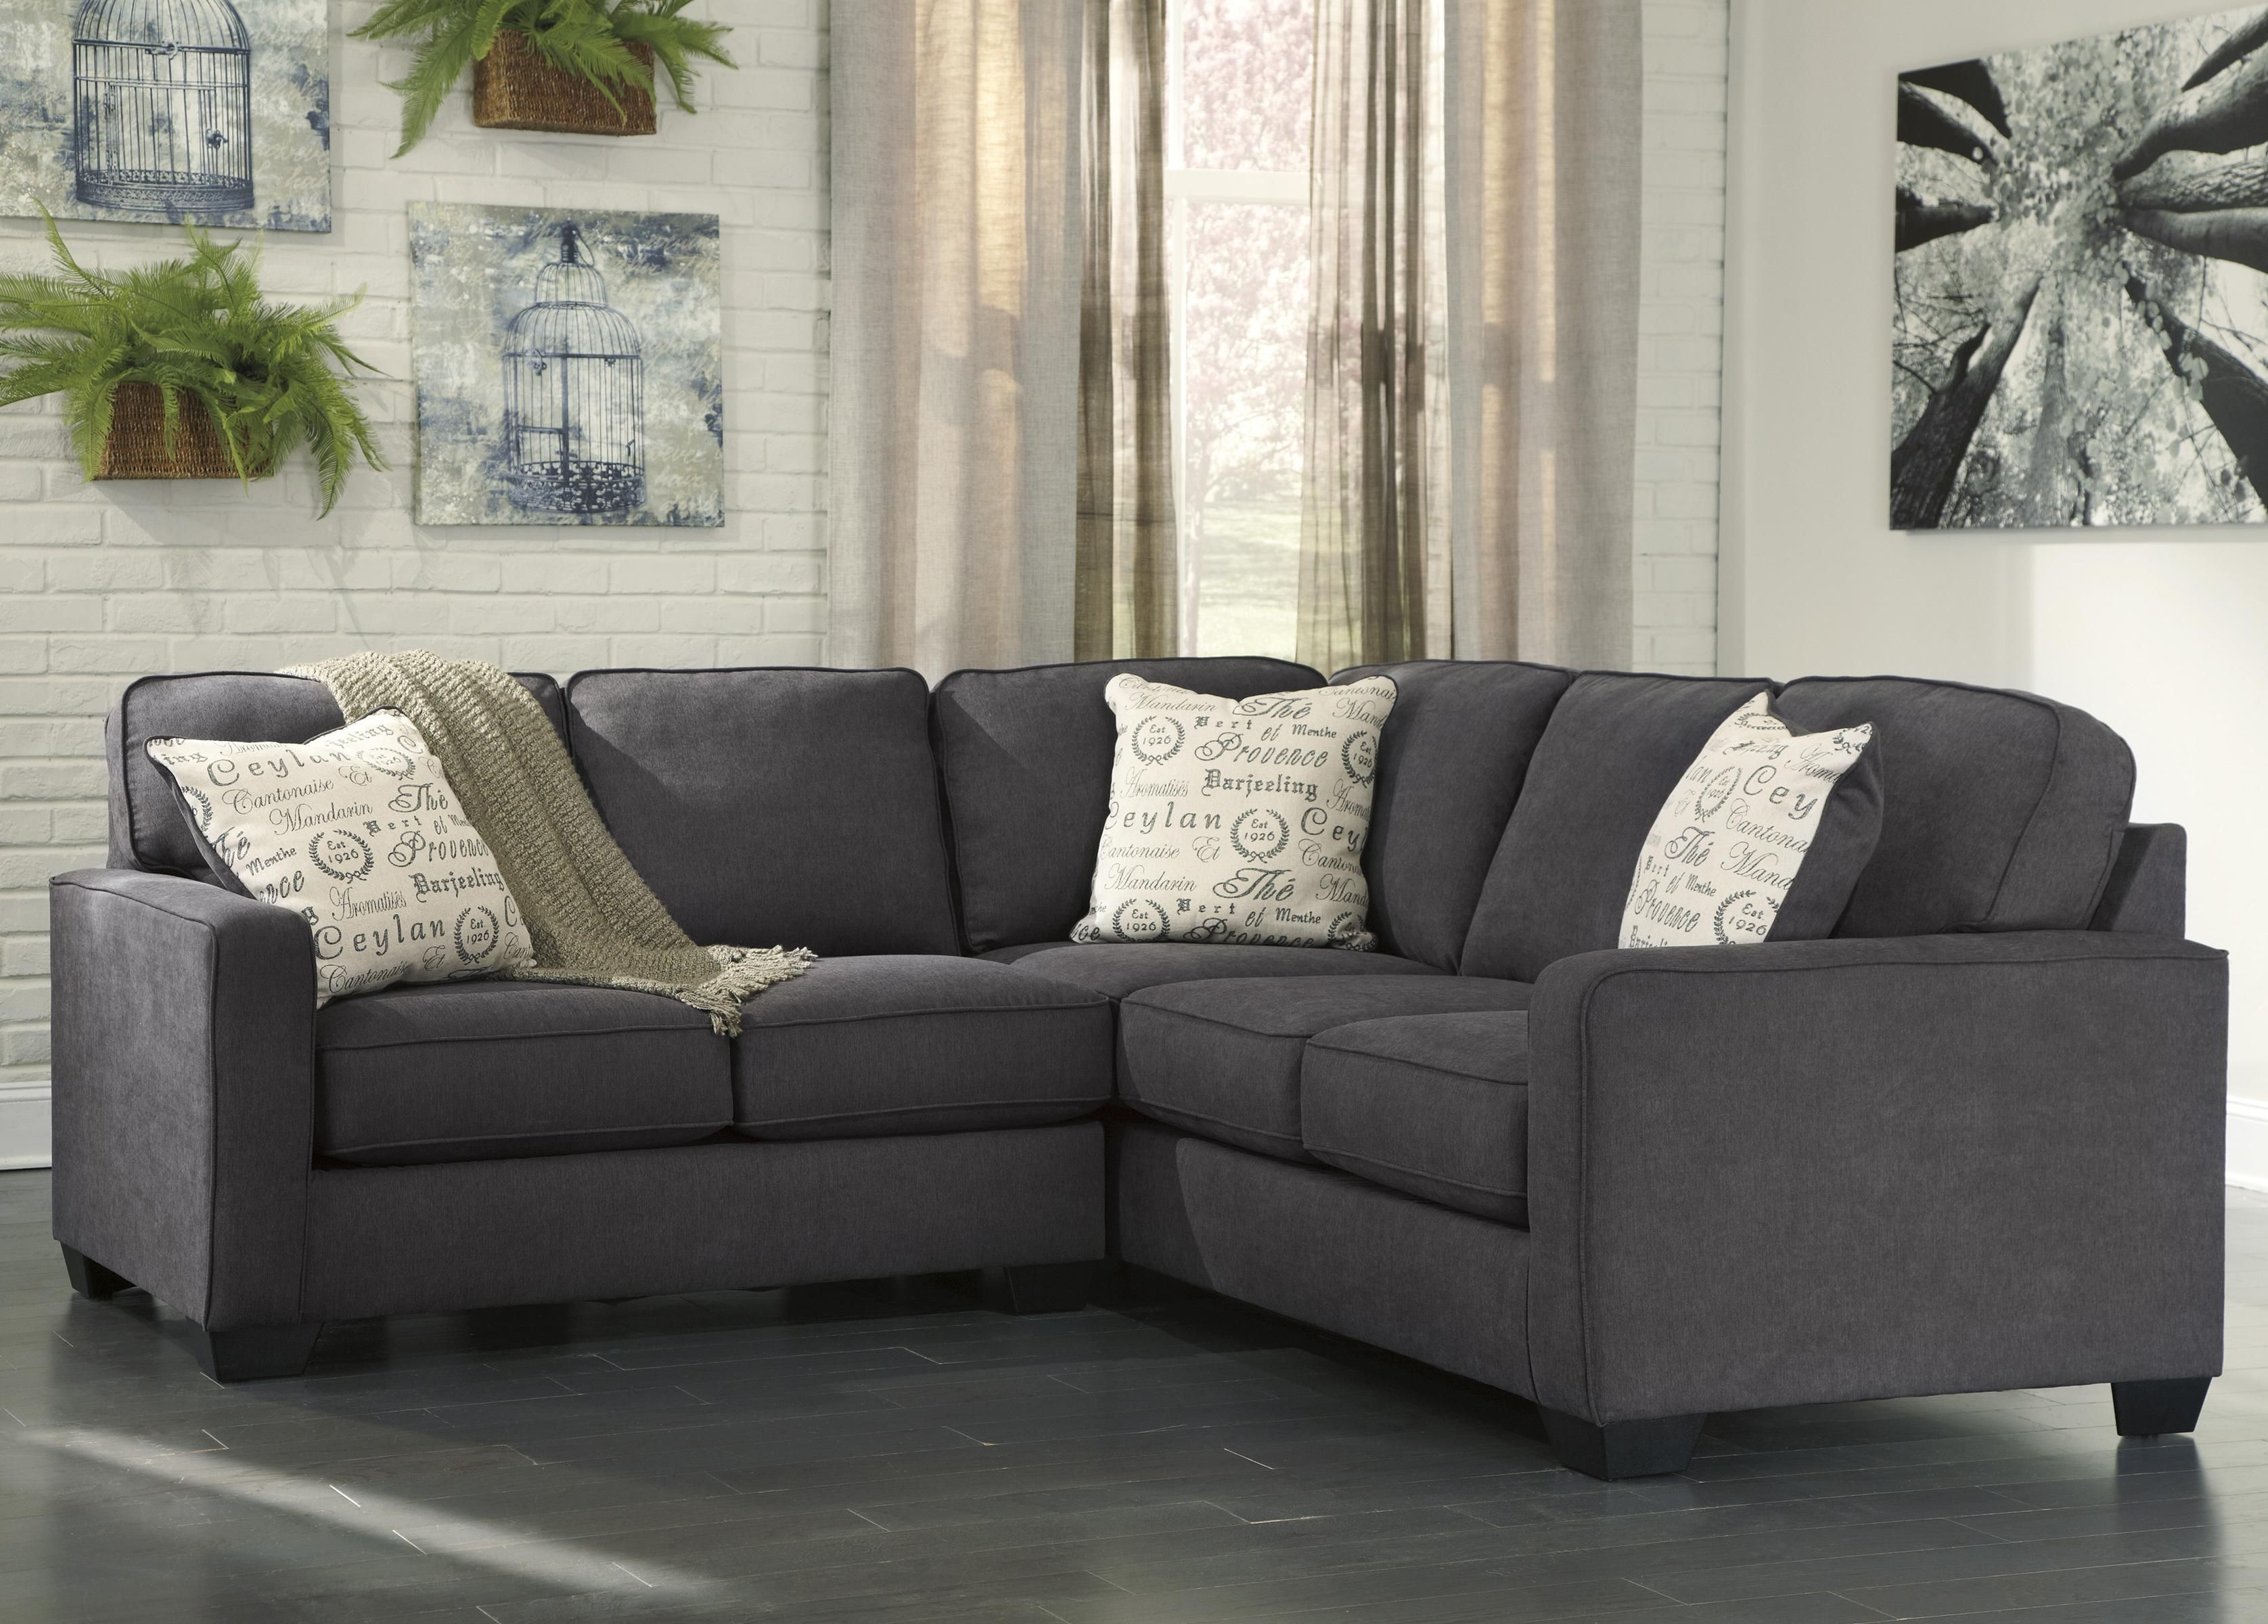 of room incredible sofa buchannan microfiber couch mainstays furniture living full sectional large sets piece ashley size taupe set